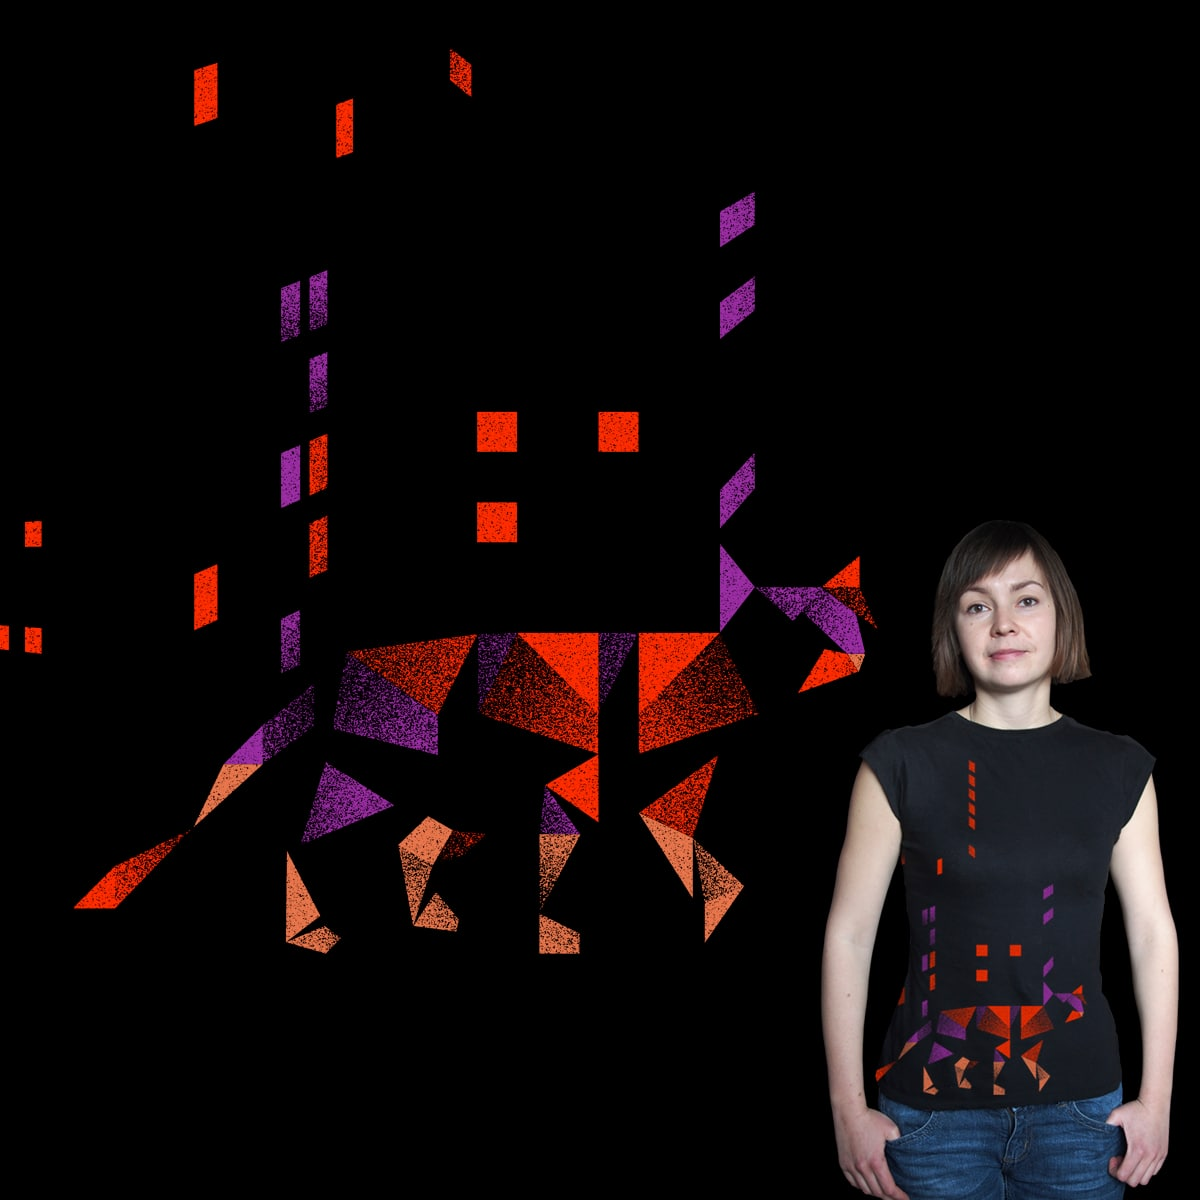 Night Walker by Anise on Threadless